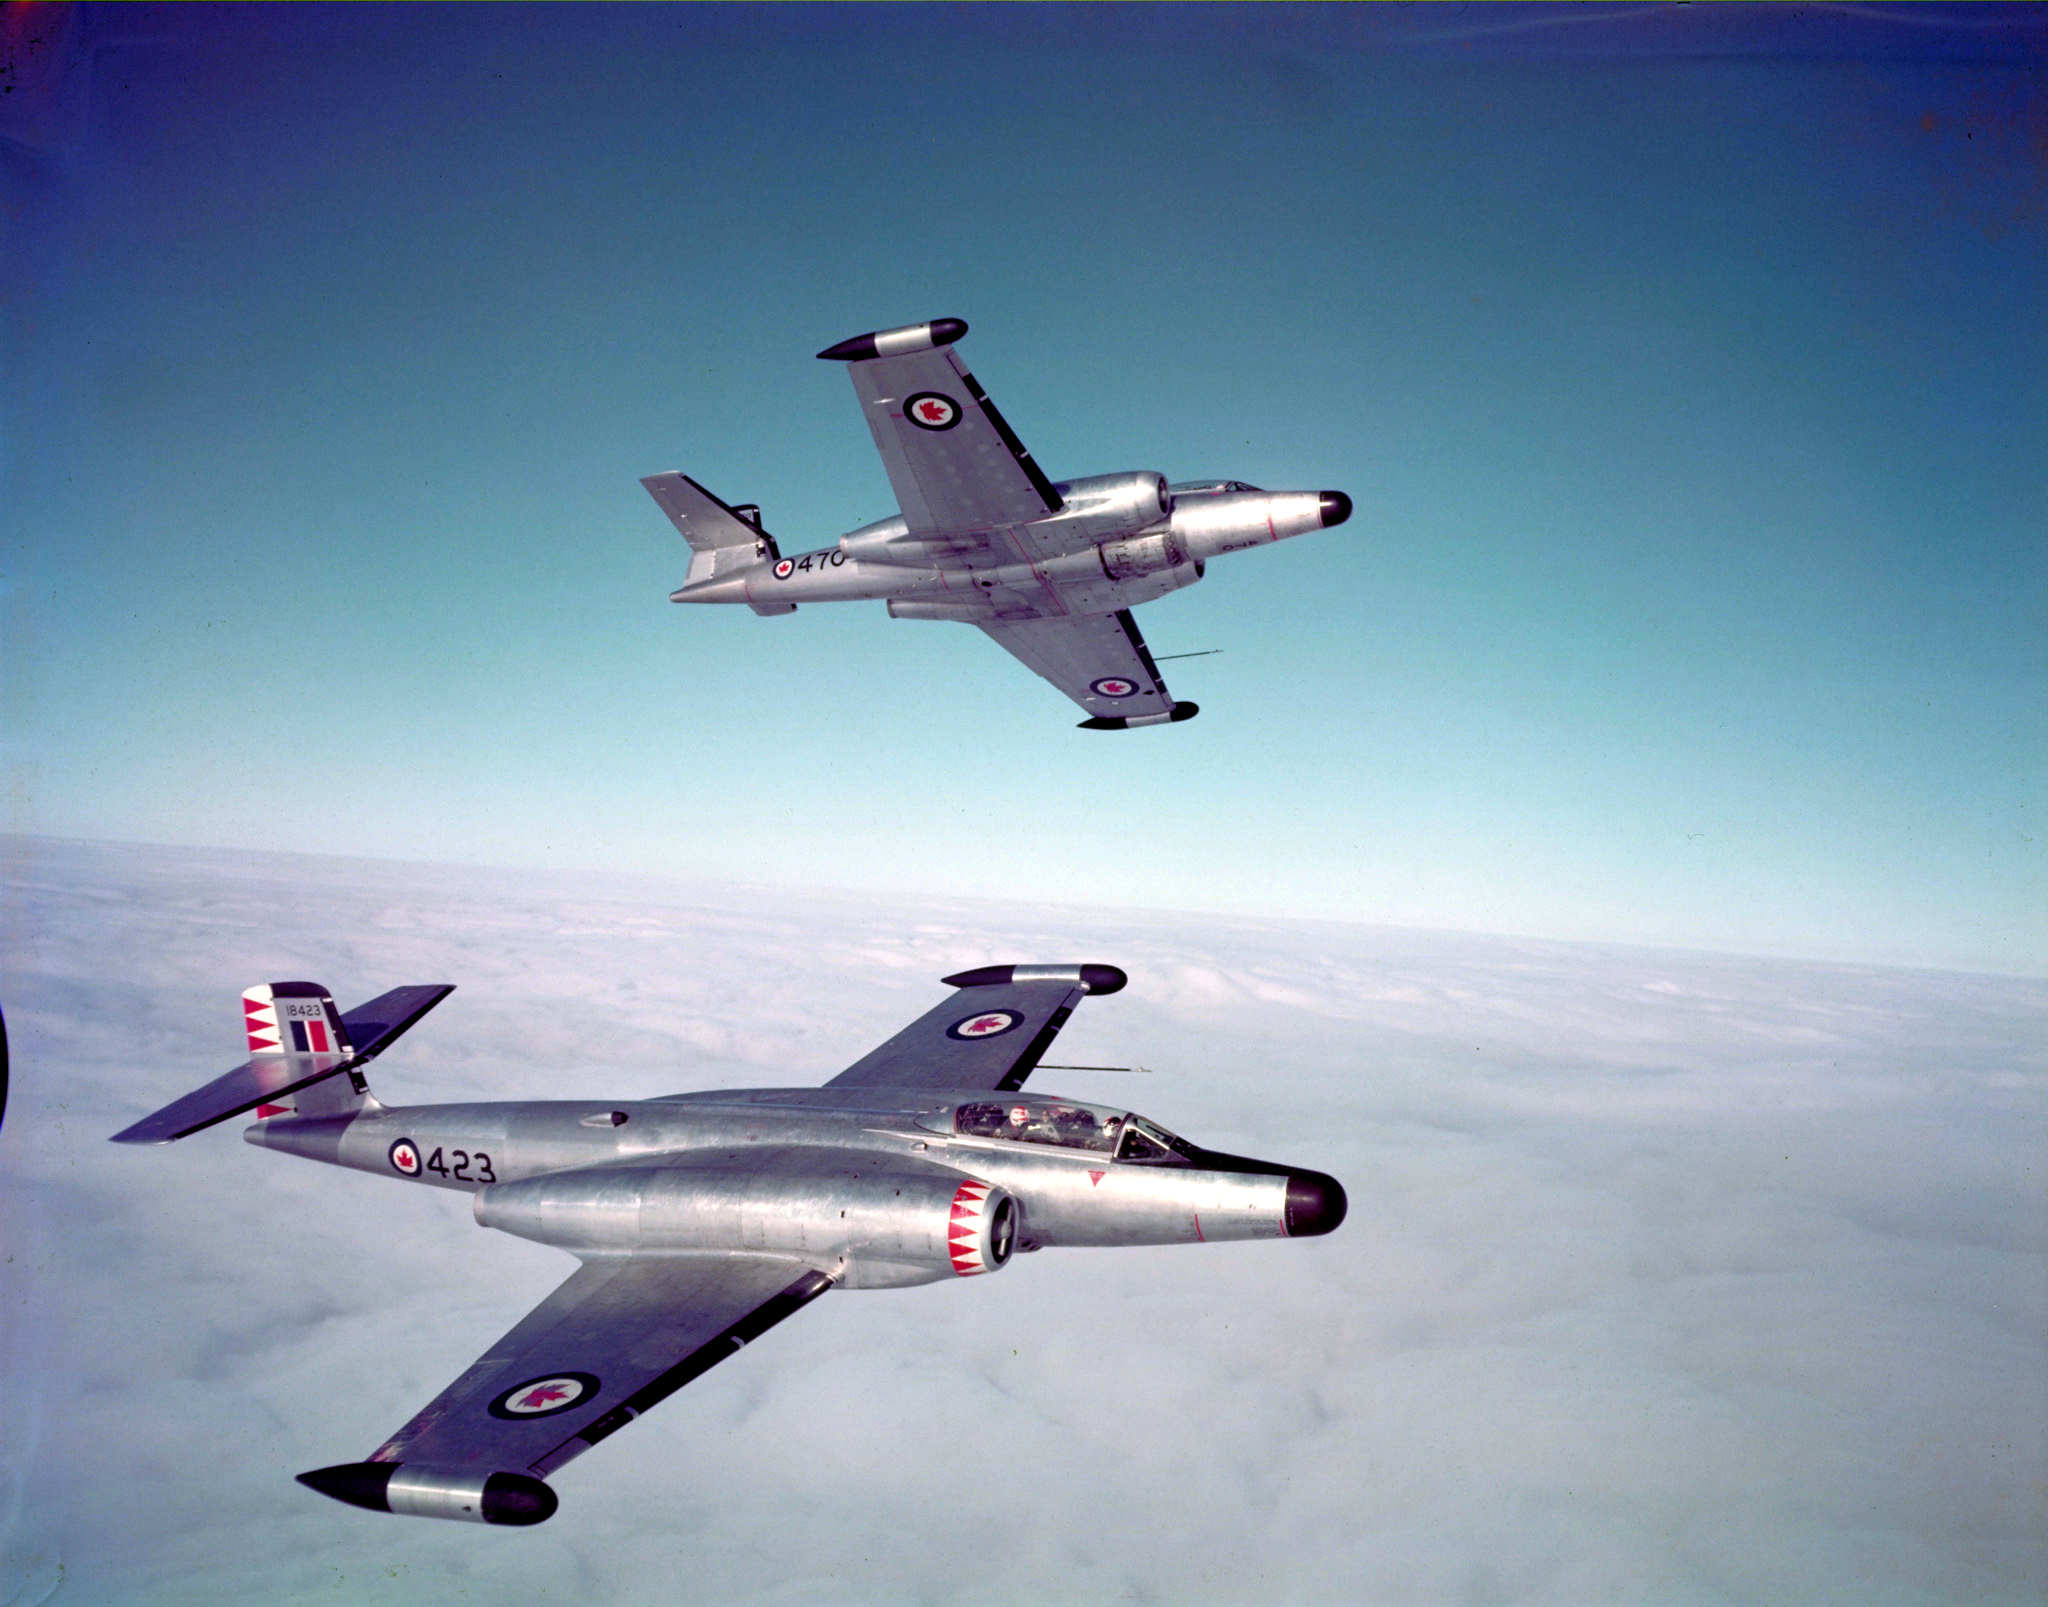 Two CF-100 Mk IV Canucks in flight. PHOTO: DND Archives, PC-1089